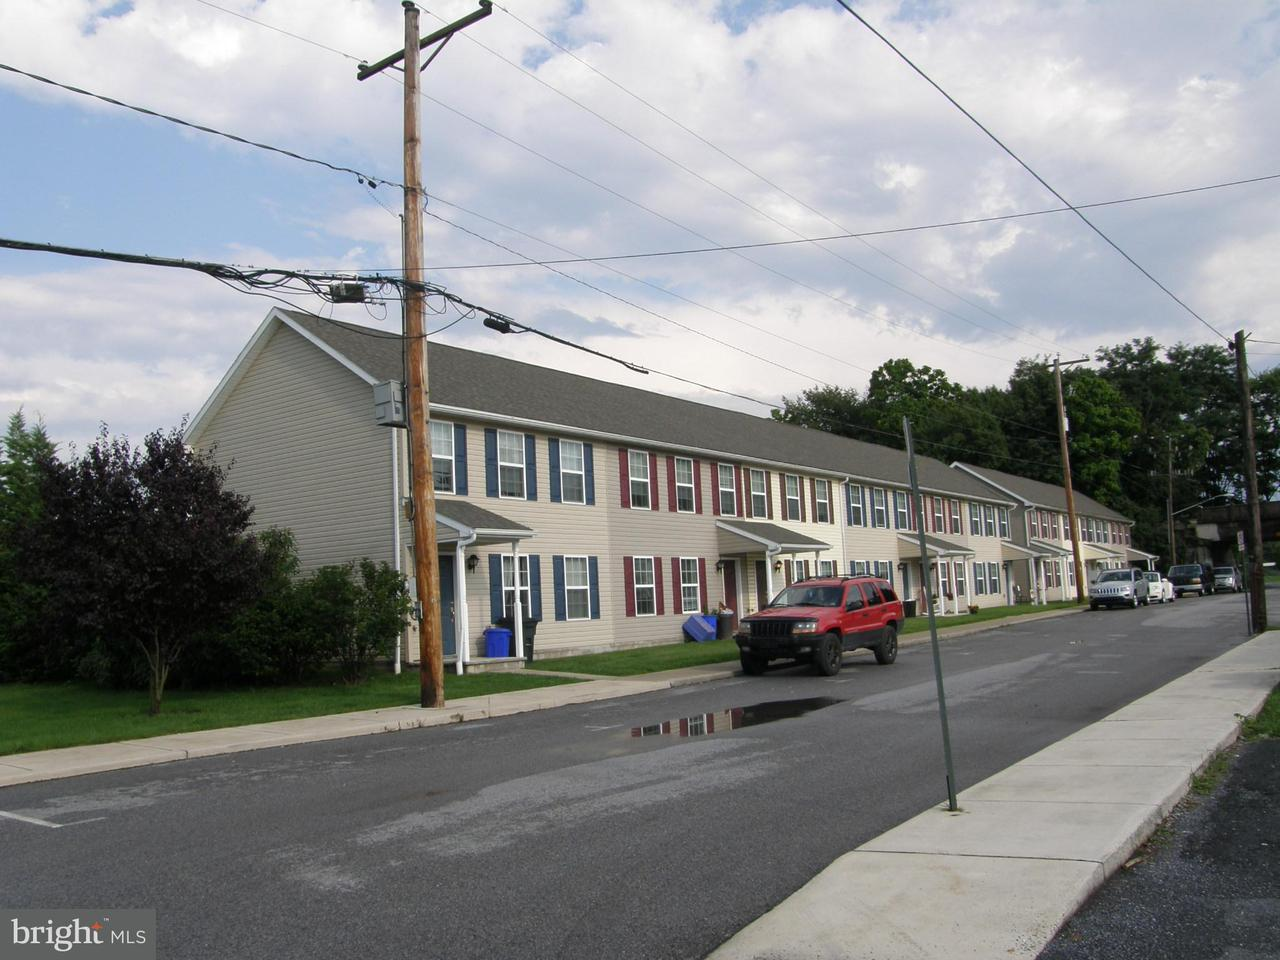 Multi-Family Home for Sale at 121-147 Seneca - Earl St S 121-147 Seneca - Earl St S Shippensburg, Pennsylvania 17257 United States